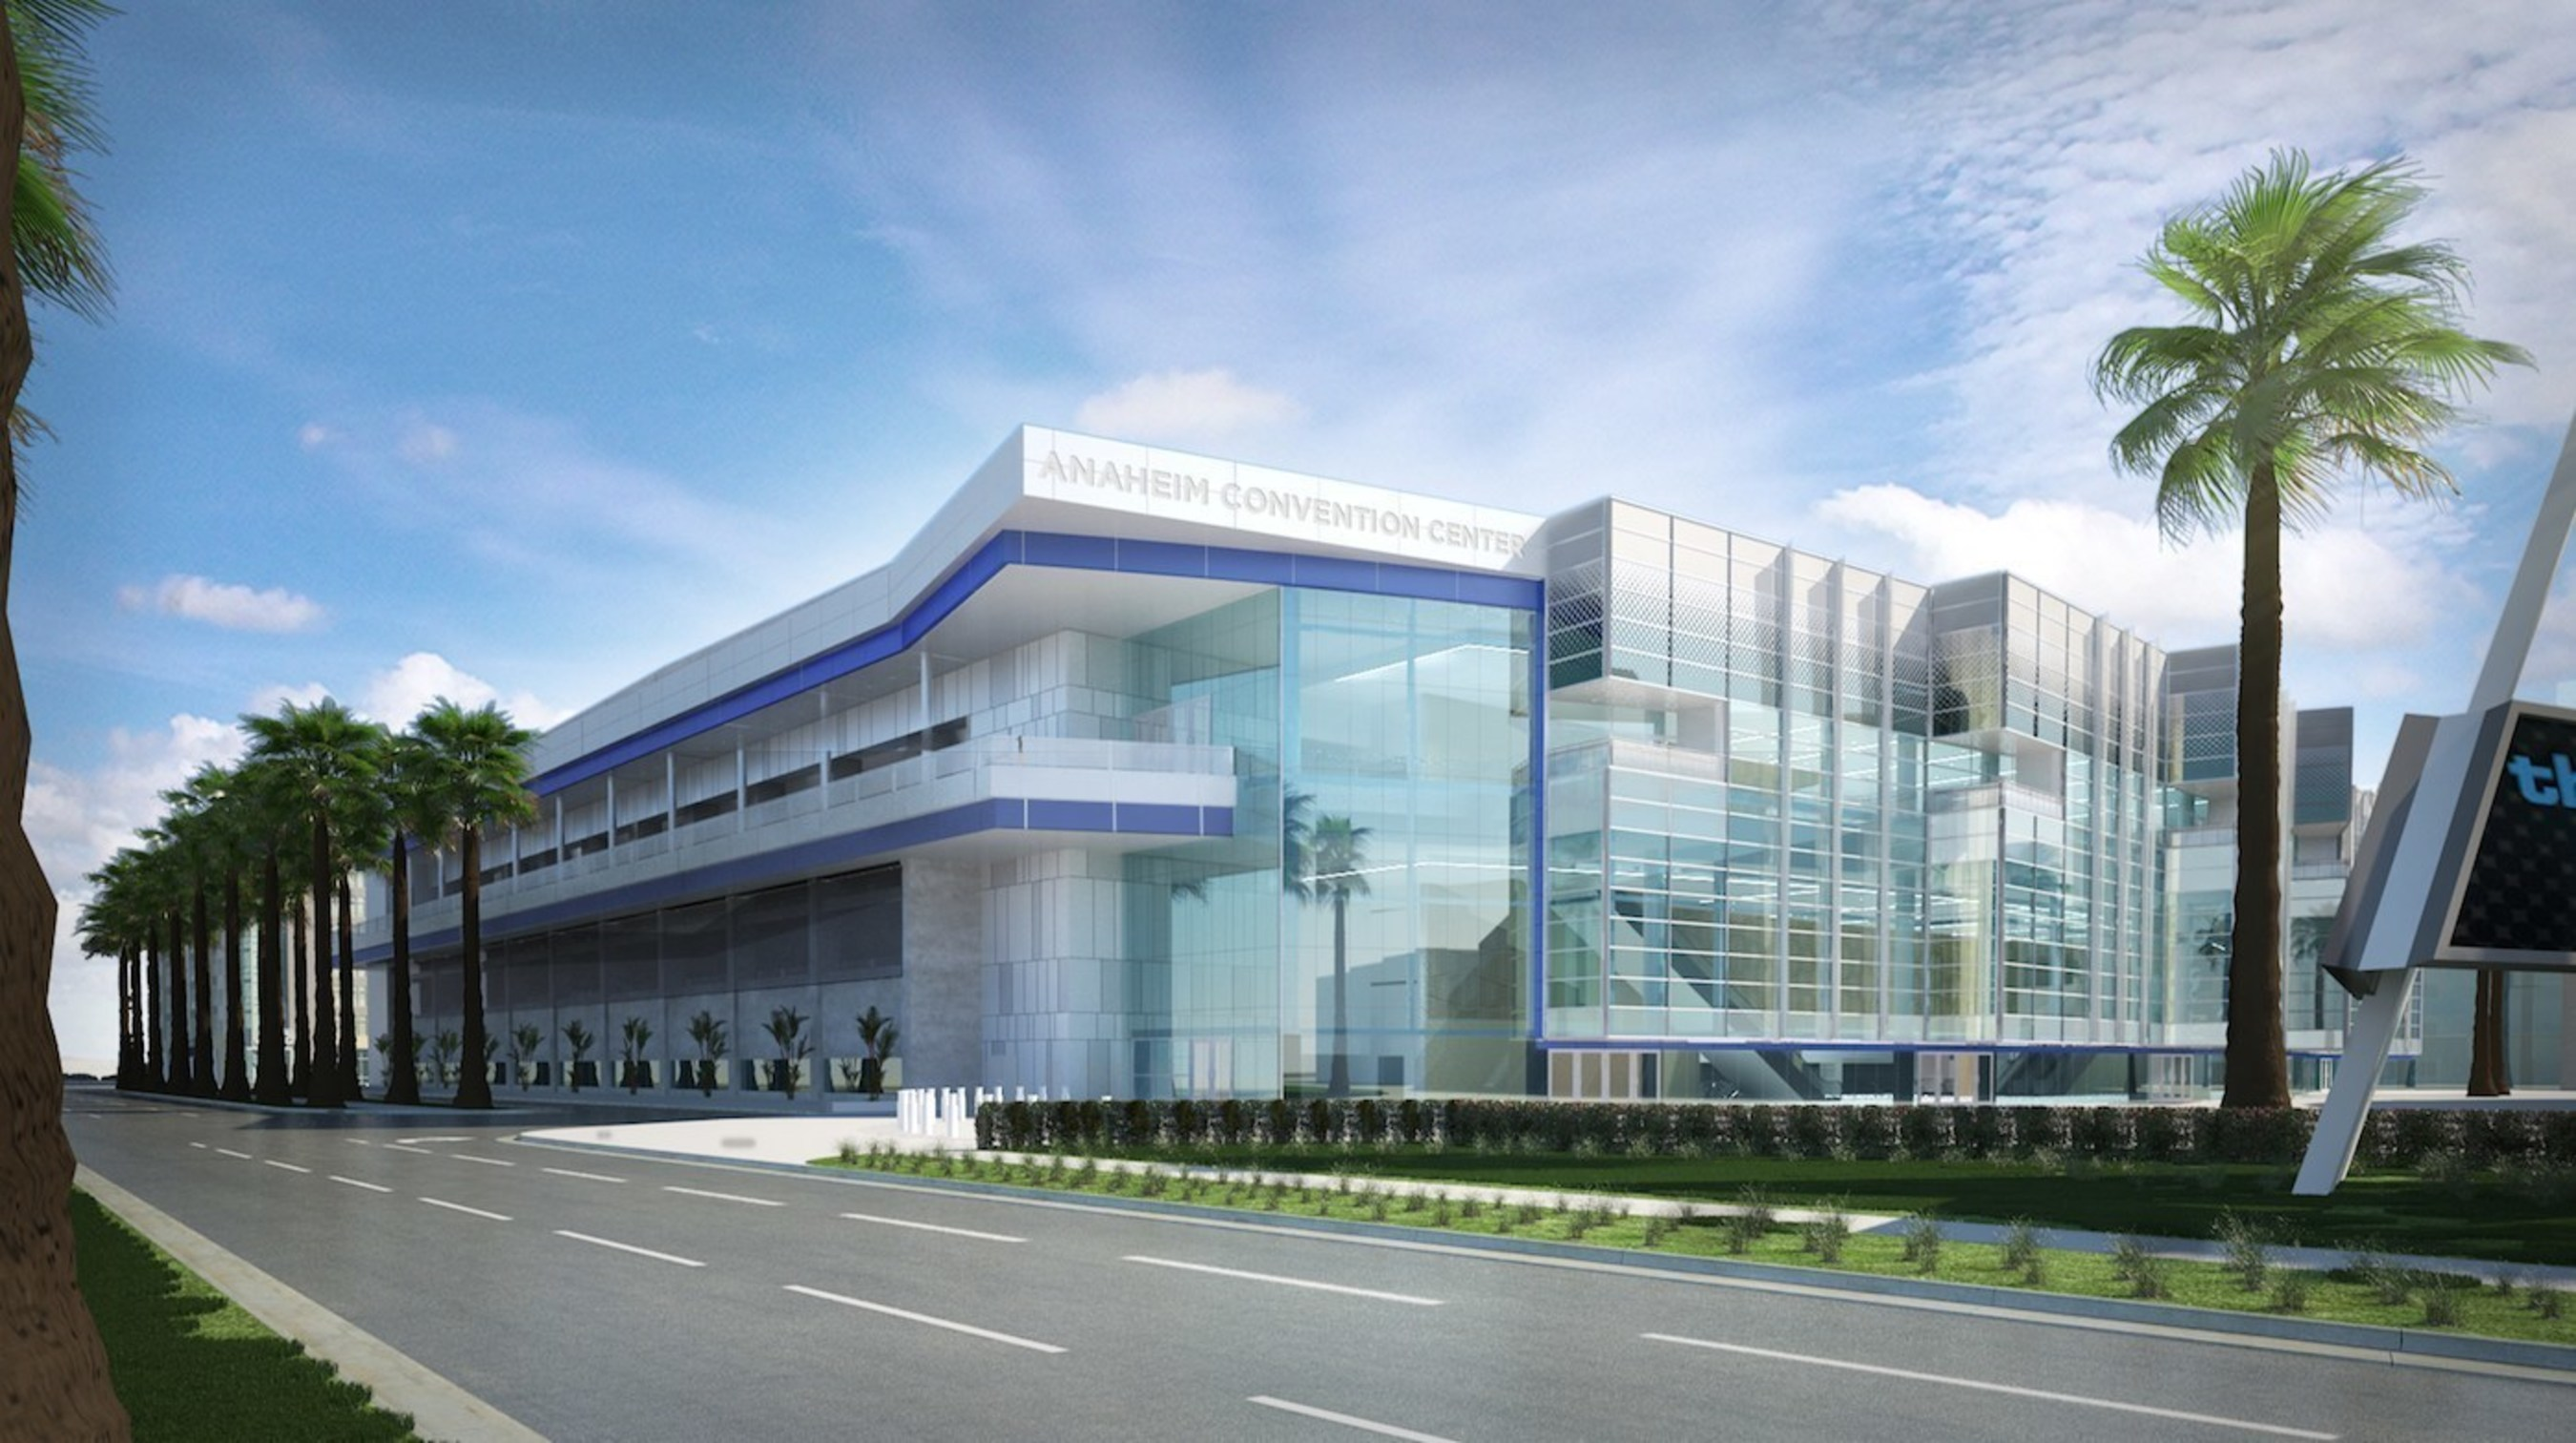 Rendering of Anaheim Convention Center Expansion, the project is set for completion in 2017. (Credit: Anaheim/Orange County Visitor & Convention Bureau)